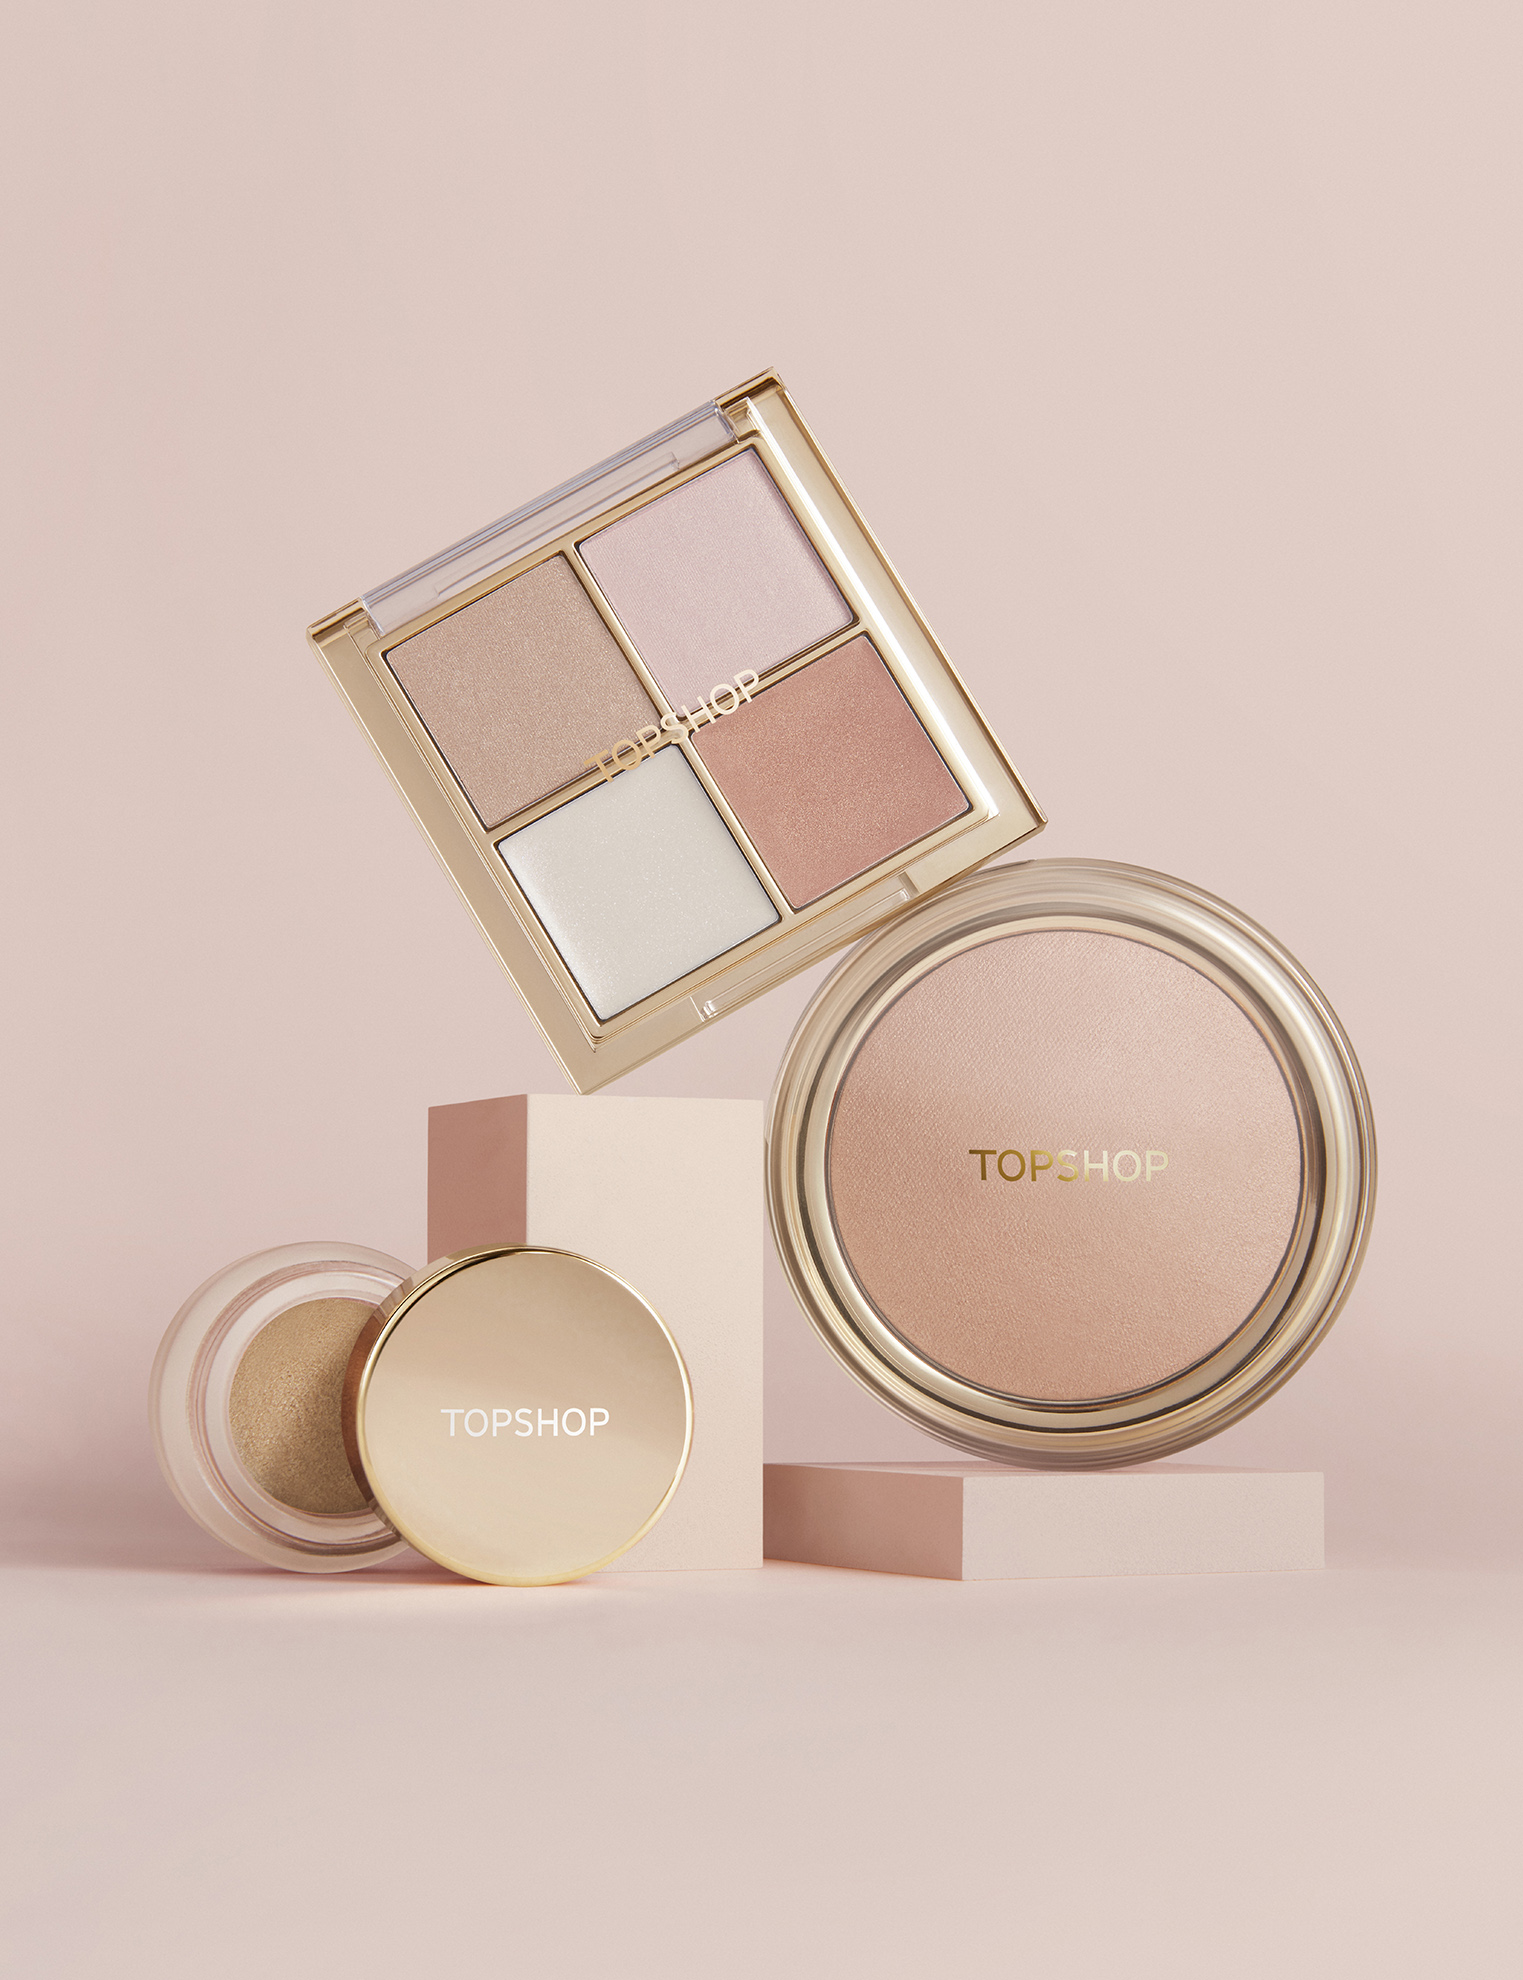 topshop-still-life-photographer-london-make-up-beauty-cosmetics-product-photography-2.jpg